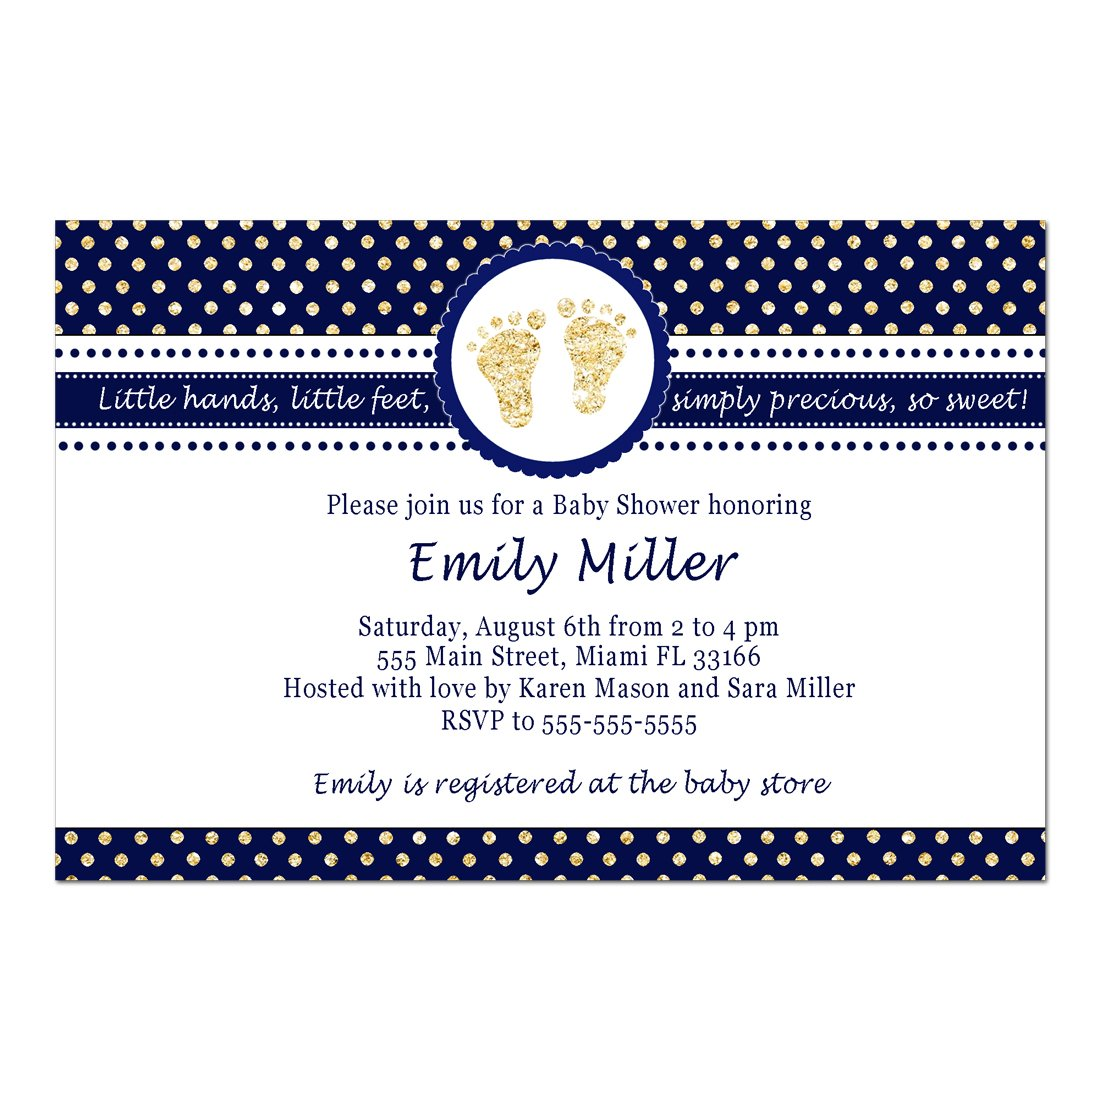 30 Invitations Boy Baby Shower Navy Blue Gold Footprints Personalized Photo Paper